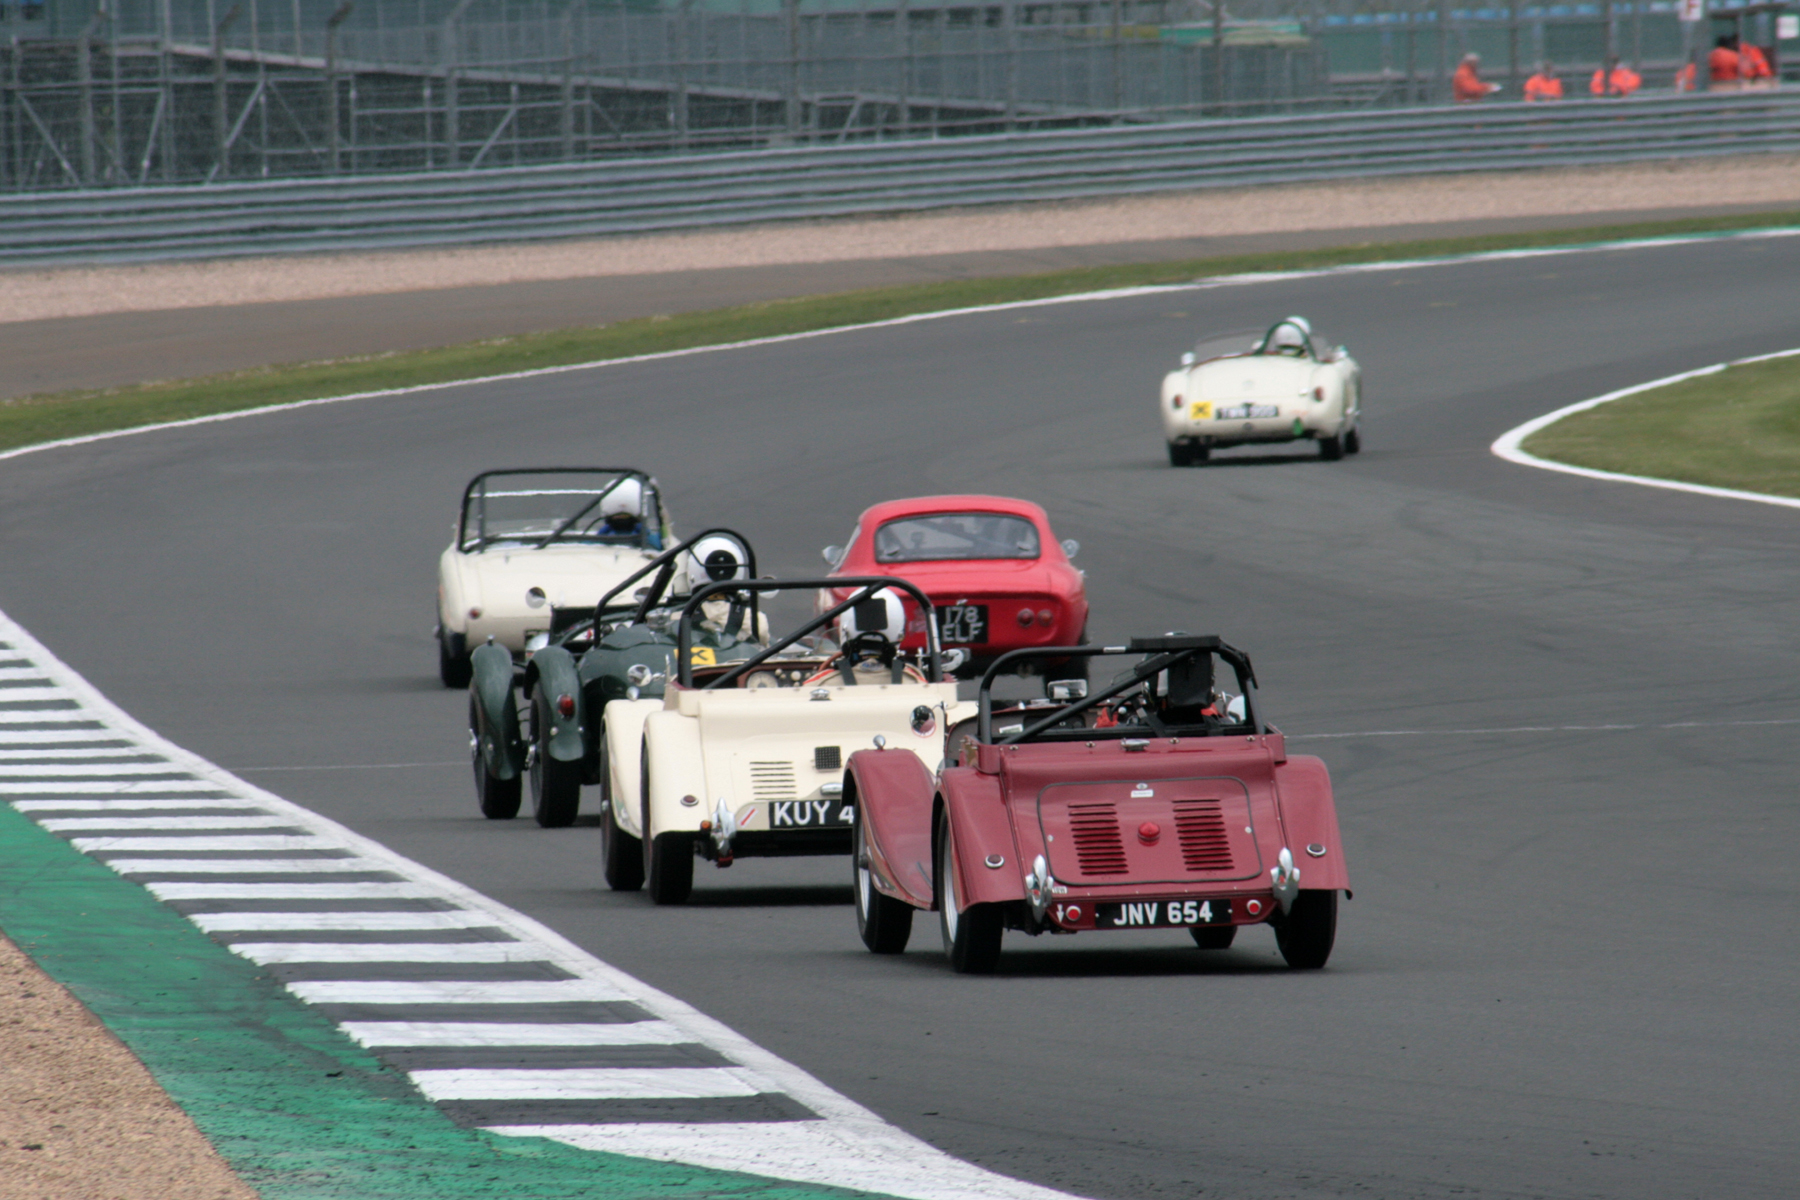 The battling at the back was equally close. As the MGA Twin Cam of newcomer Nick Burnside pulls clear in 23rd place, Dougal Cawley, recovering from his poor start in the Elite, took several places and is seen here challenging the Austin Healey of Matthew Collings. Behind them are the Frazer Nash LMR of Thomas Ward and the dicing Morgans of Mark Shears and Leigh Sebba. Only the Jowett Jupiter of Harry Naerger is yet to come through to complete the first l.ap. Photo - John Turner